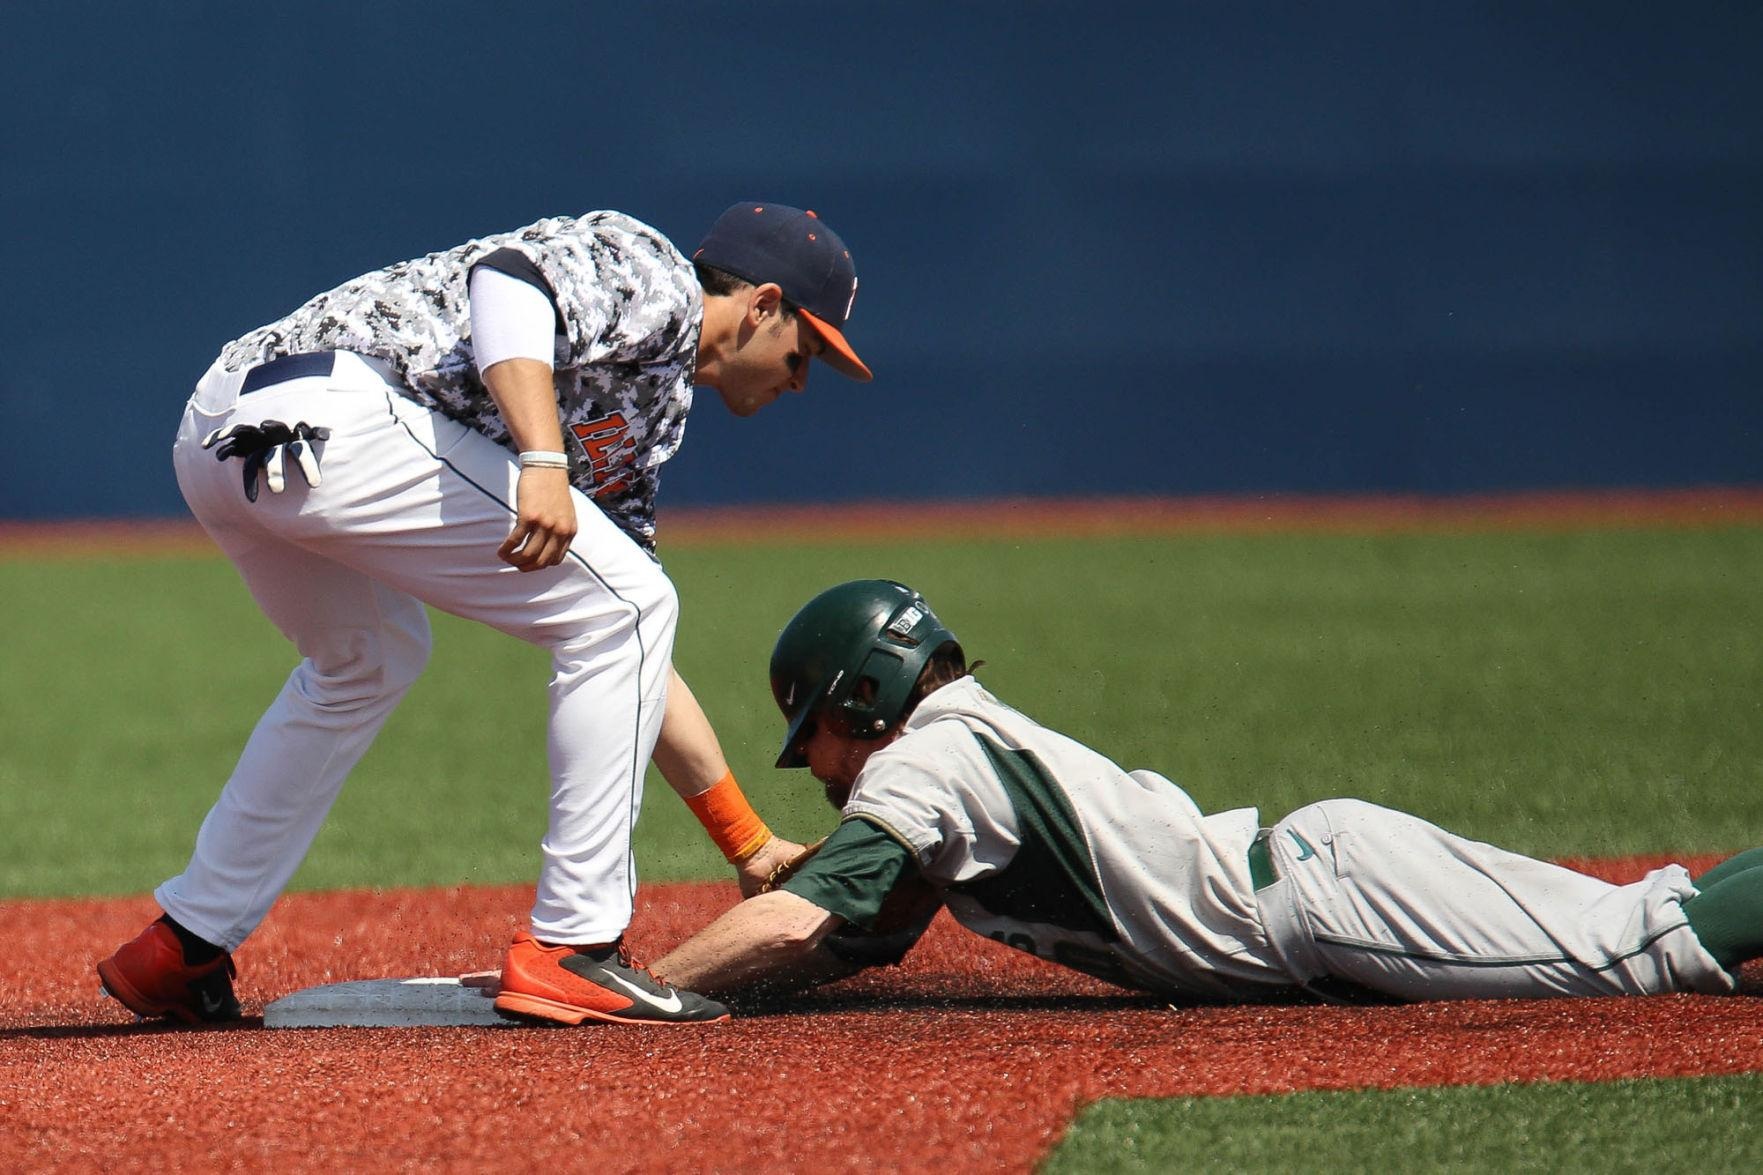 Illinois' Adam Walton tags for an out during the game against Michigan State. Walton was instrumental in the Illini's 6-2 win over Oklahoma State.